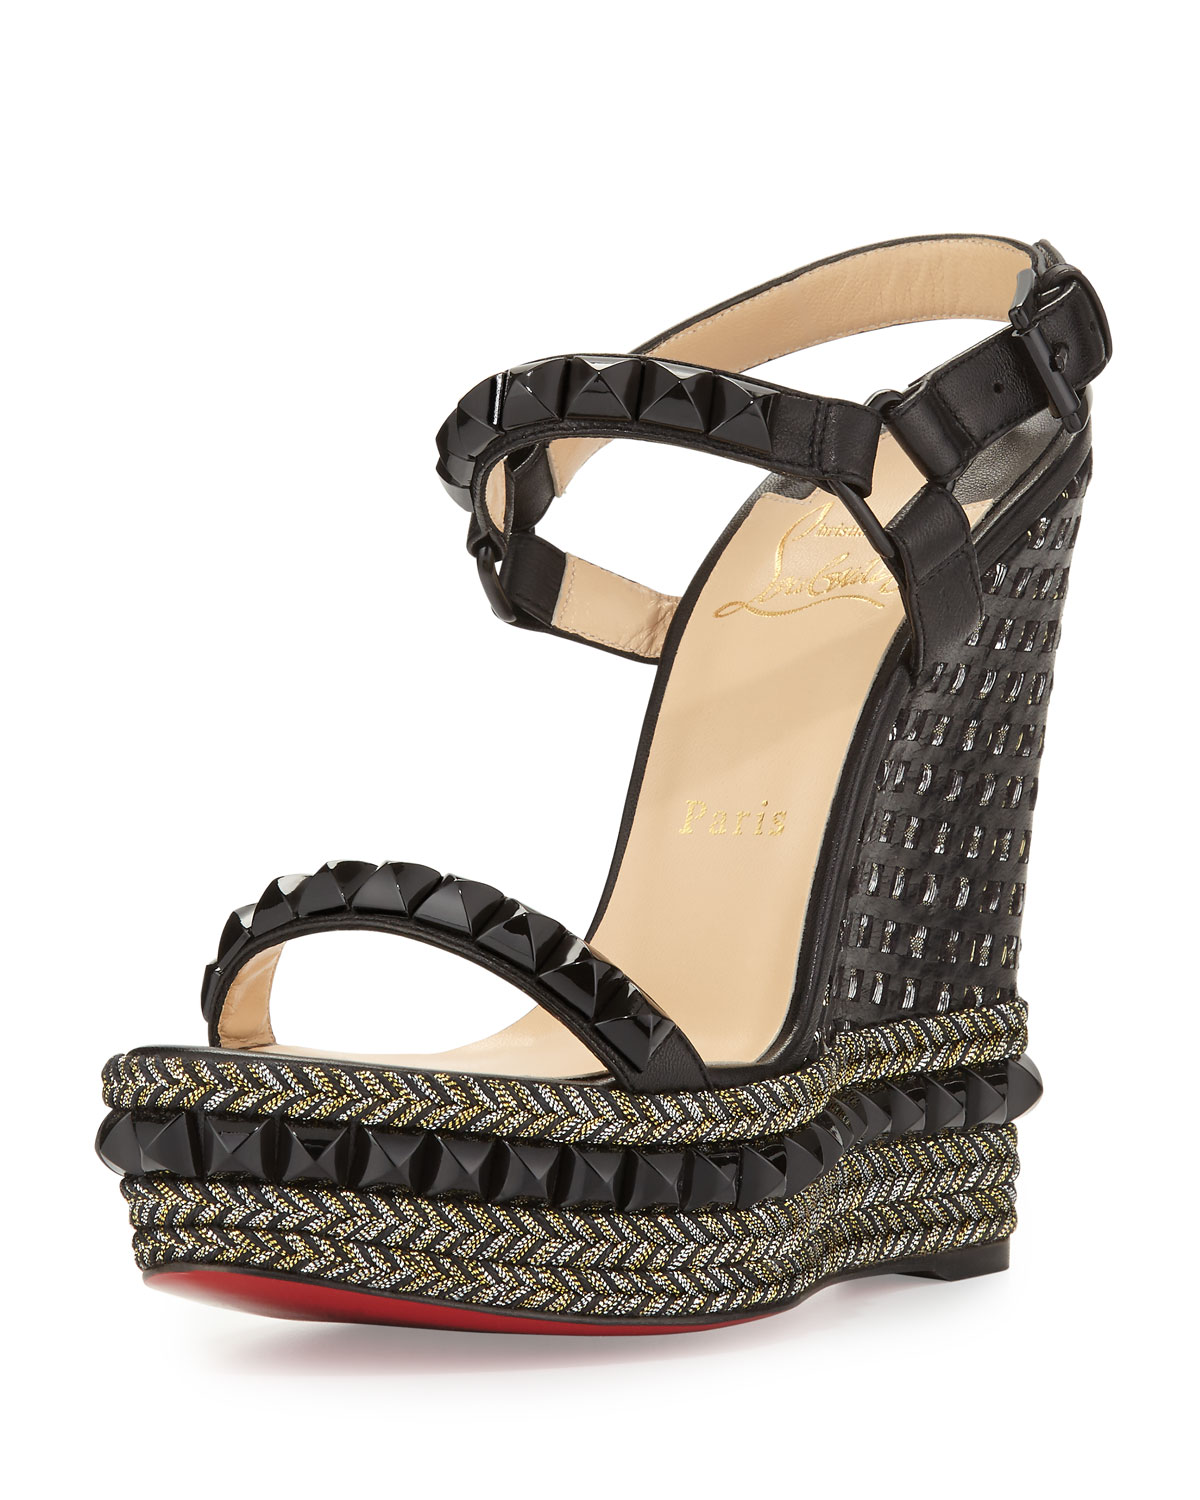 brand new a45d2 19703 Cataclou Studded Red Sole Wedge Sandal, Black